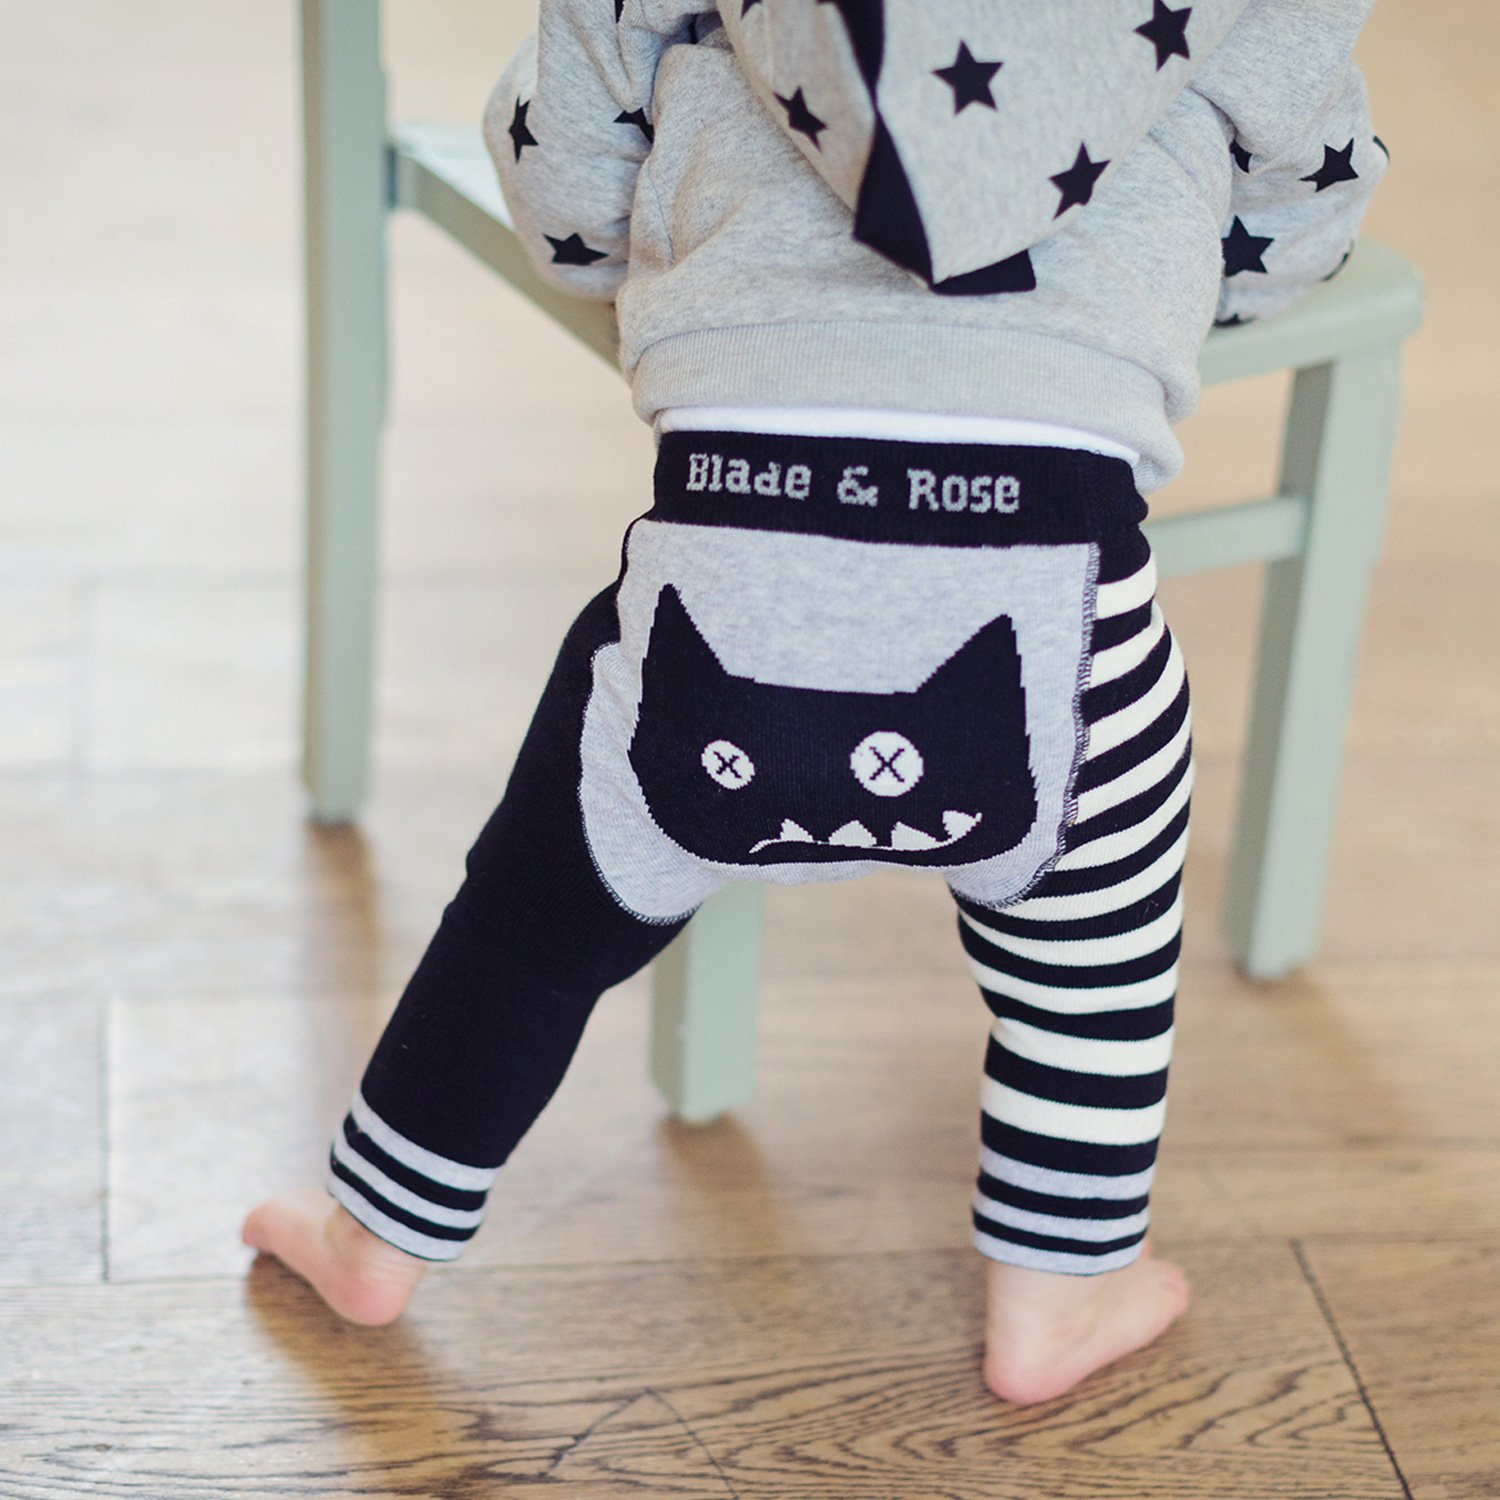 Blade & Rose Crazy Cat Leggings for Baby Boys